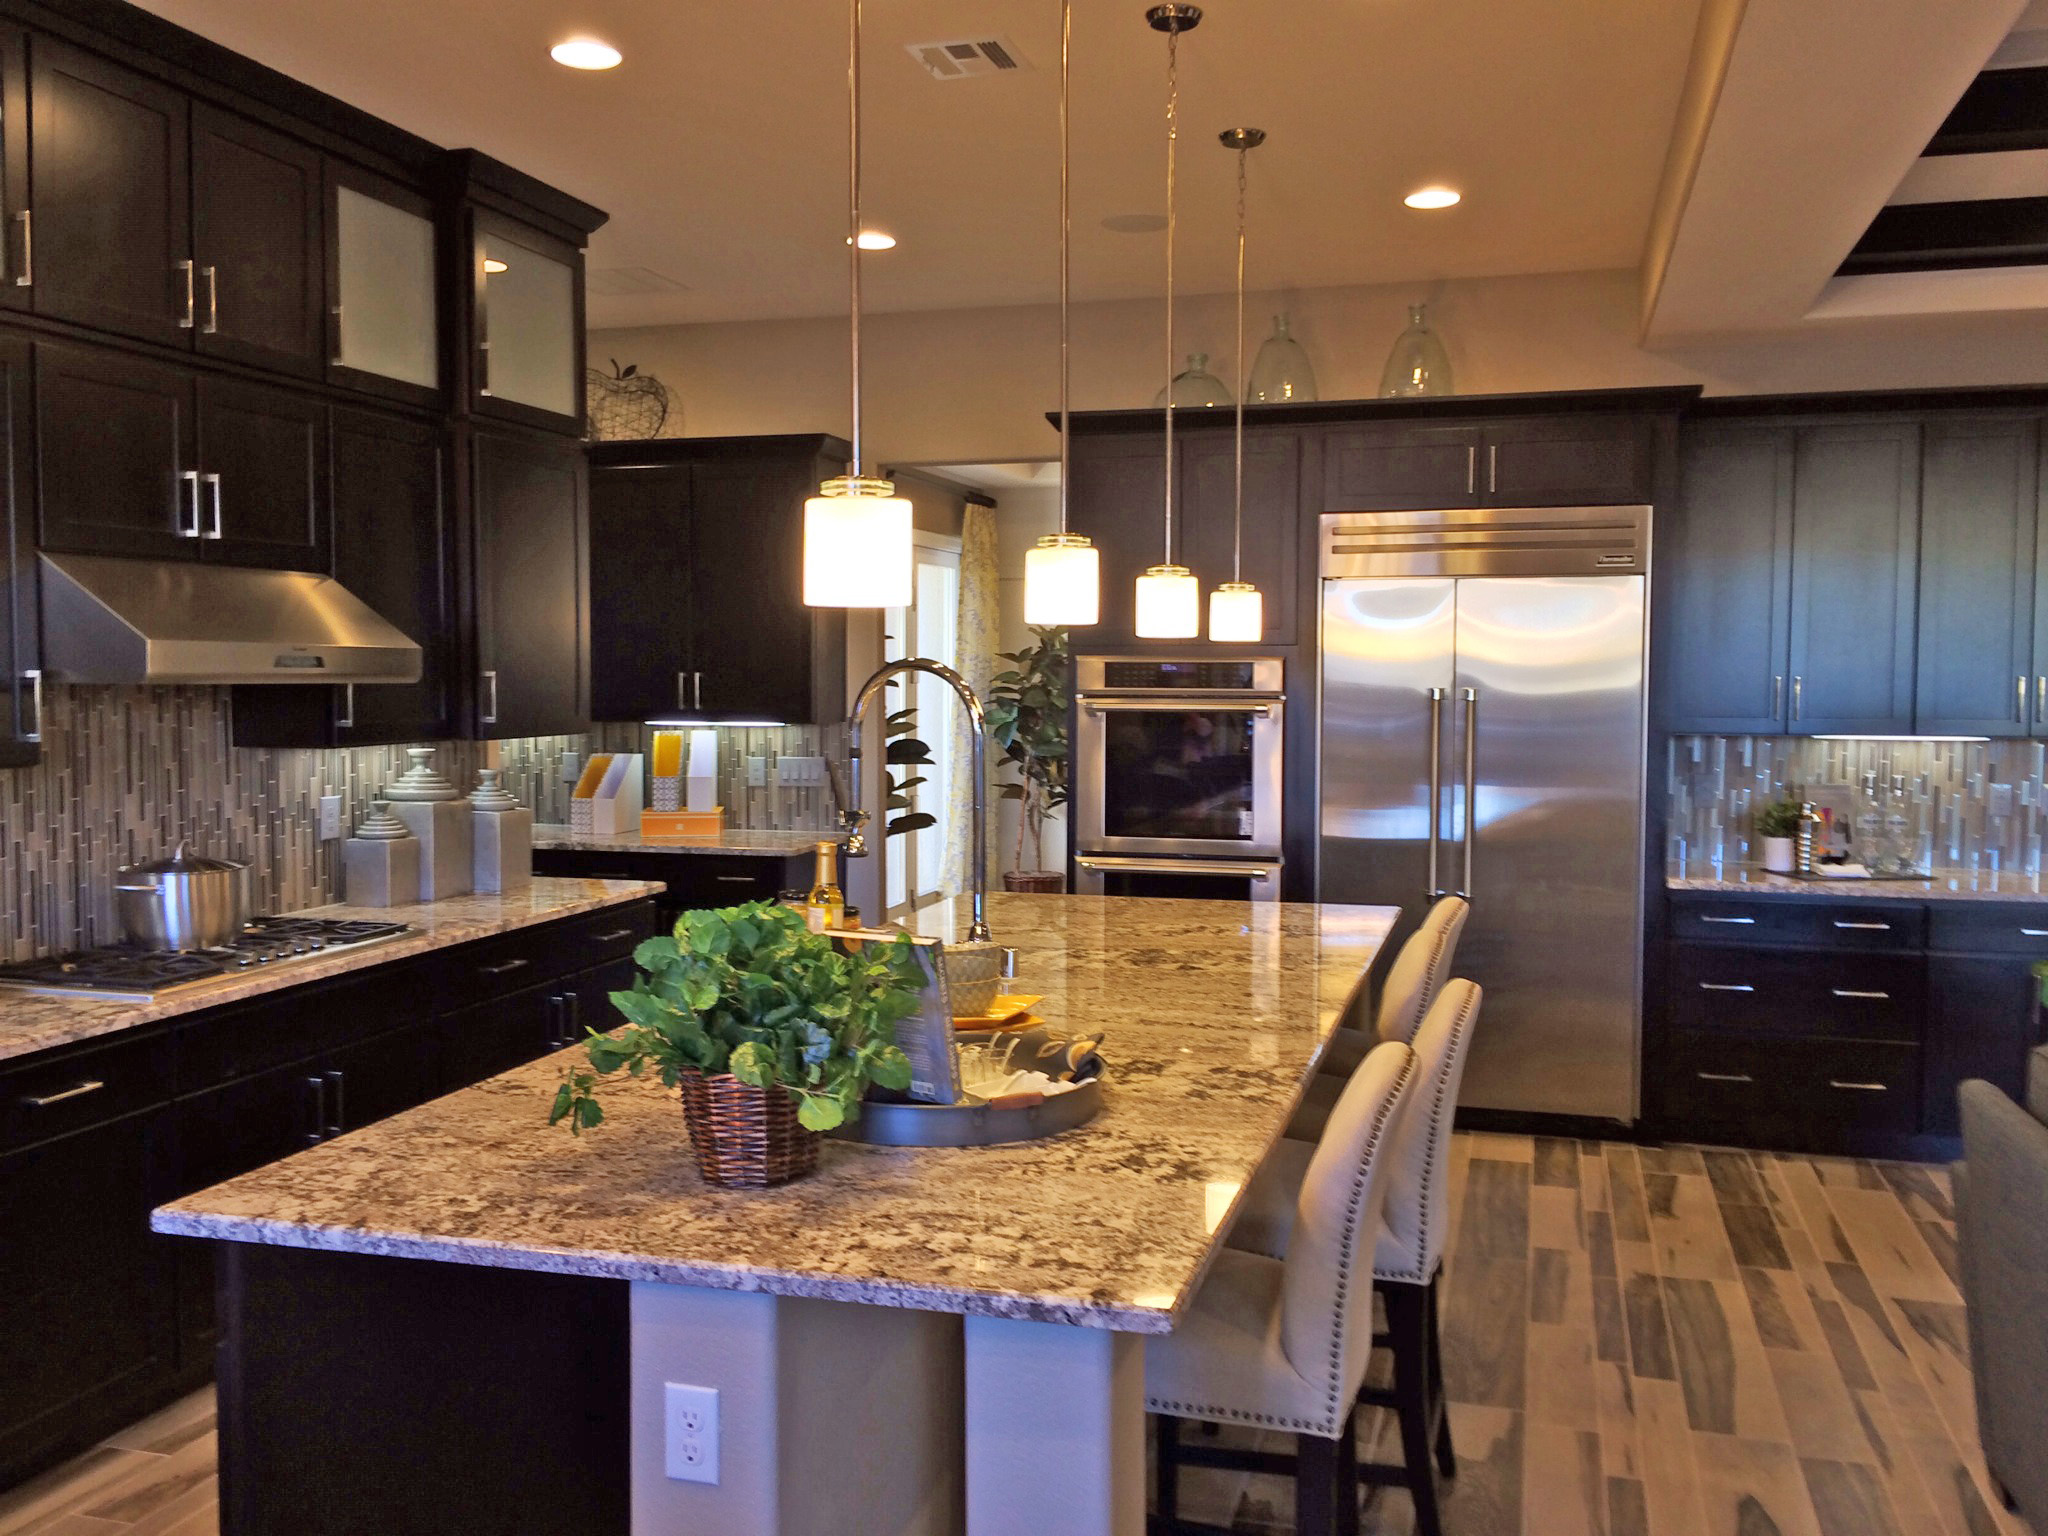 New Homes for Sale in Summerlin Paseo  Santaluz by Toll Brothers